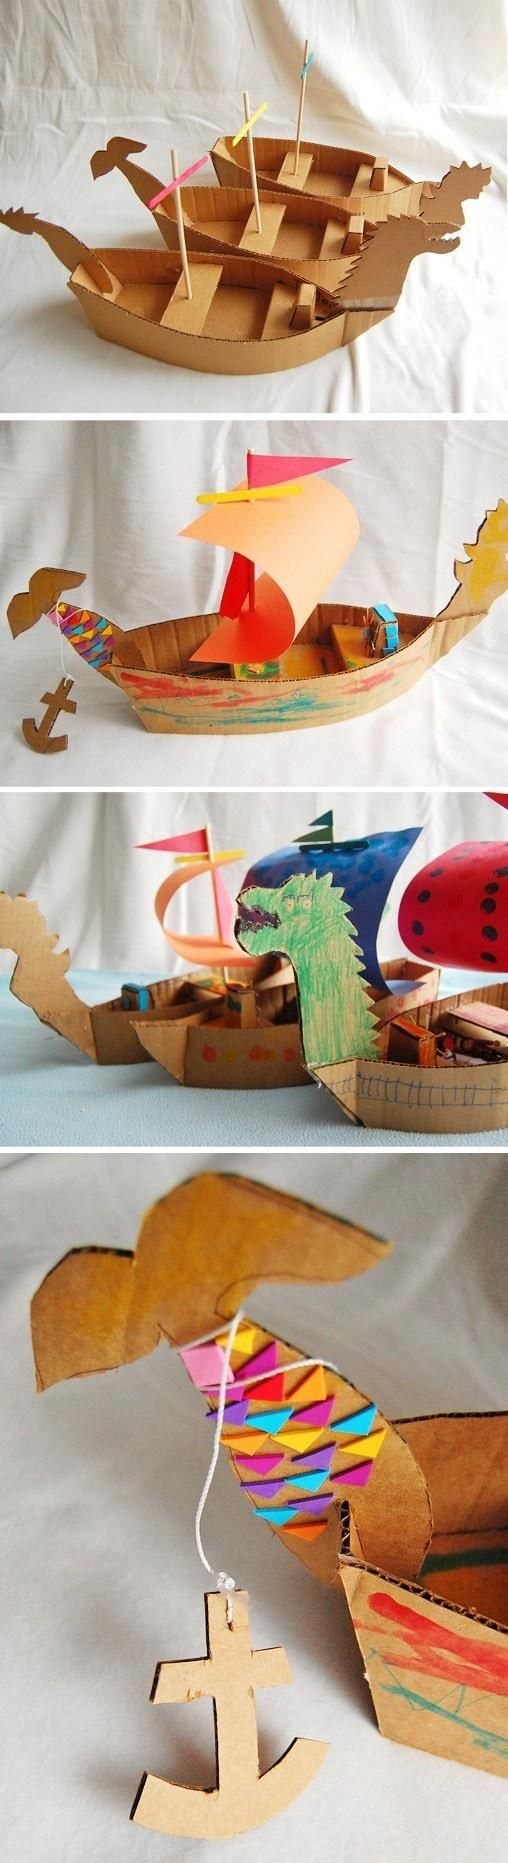 """DIY Cardboard Ships-Put simple basic directions on a chart in an """"after I'm finished"""" center. Add a few pictures of ships and boats for reference, some books (Thanksgiving-Native American, Miss Rumphias) and let kids practice following written directions for the basic craft and create, create, create."""